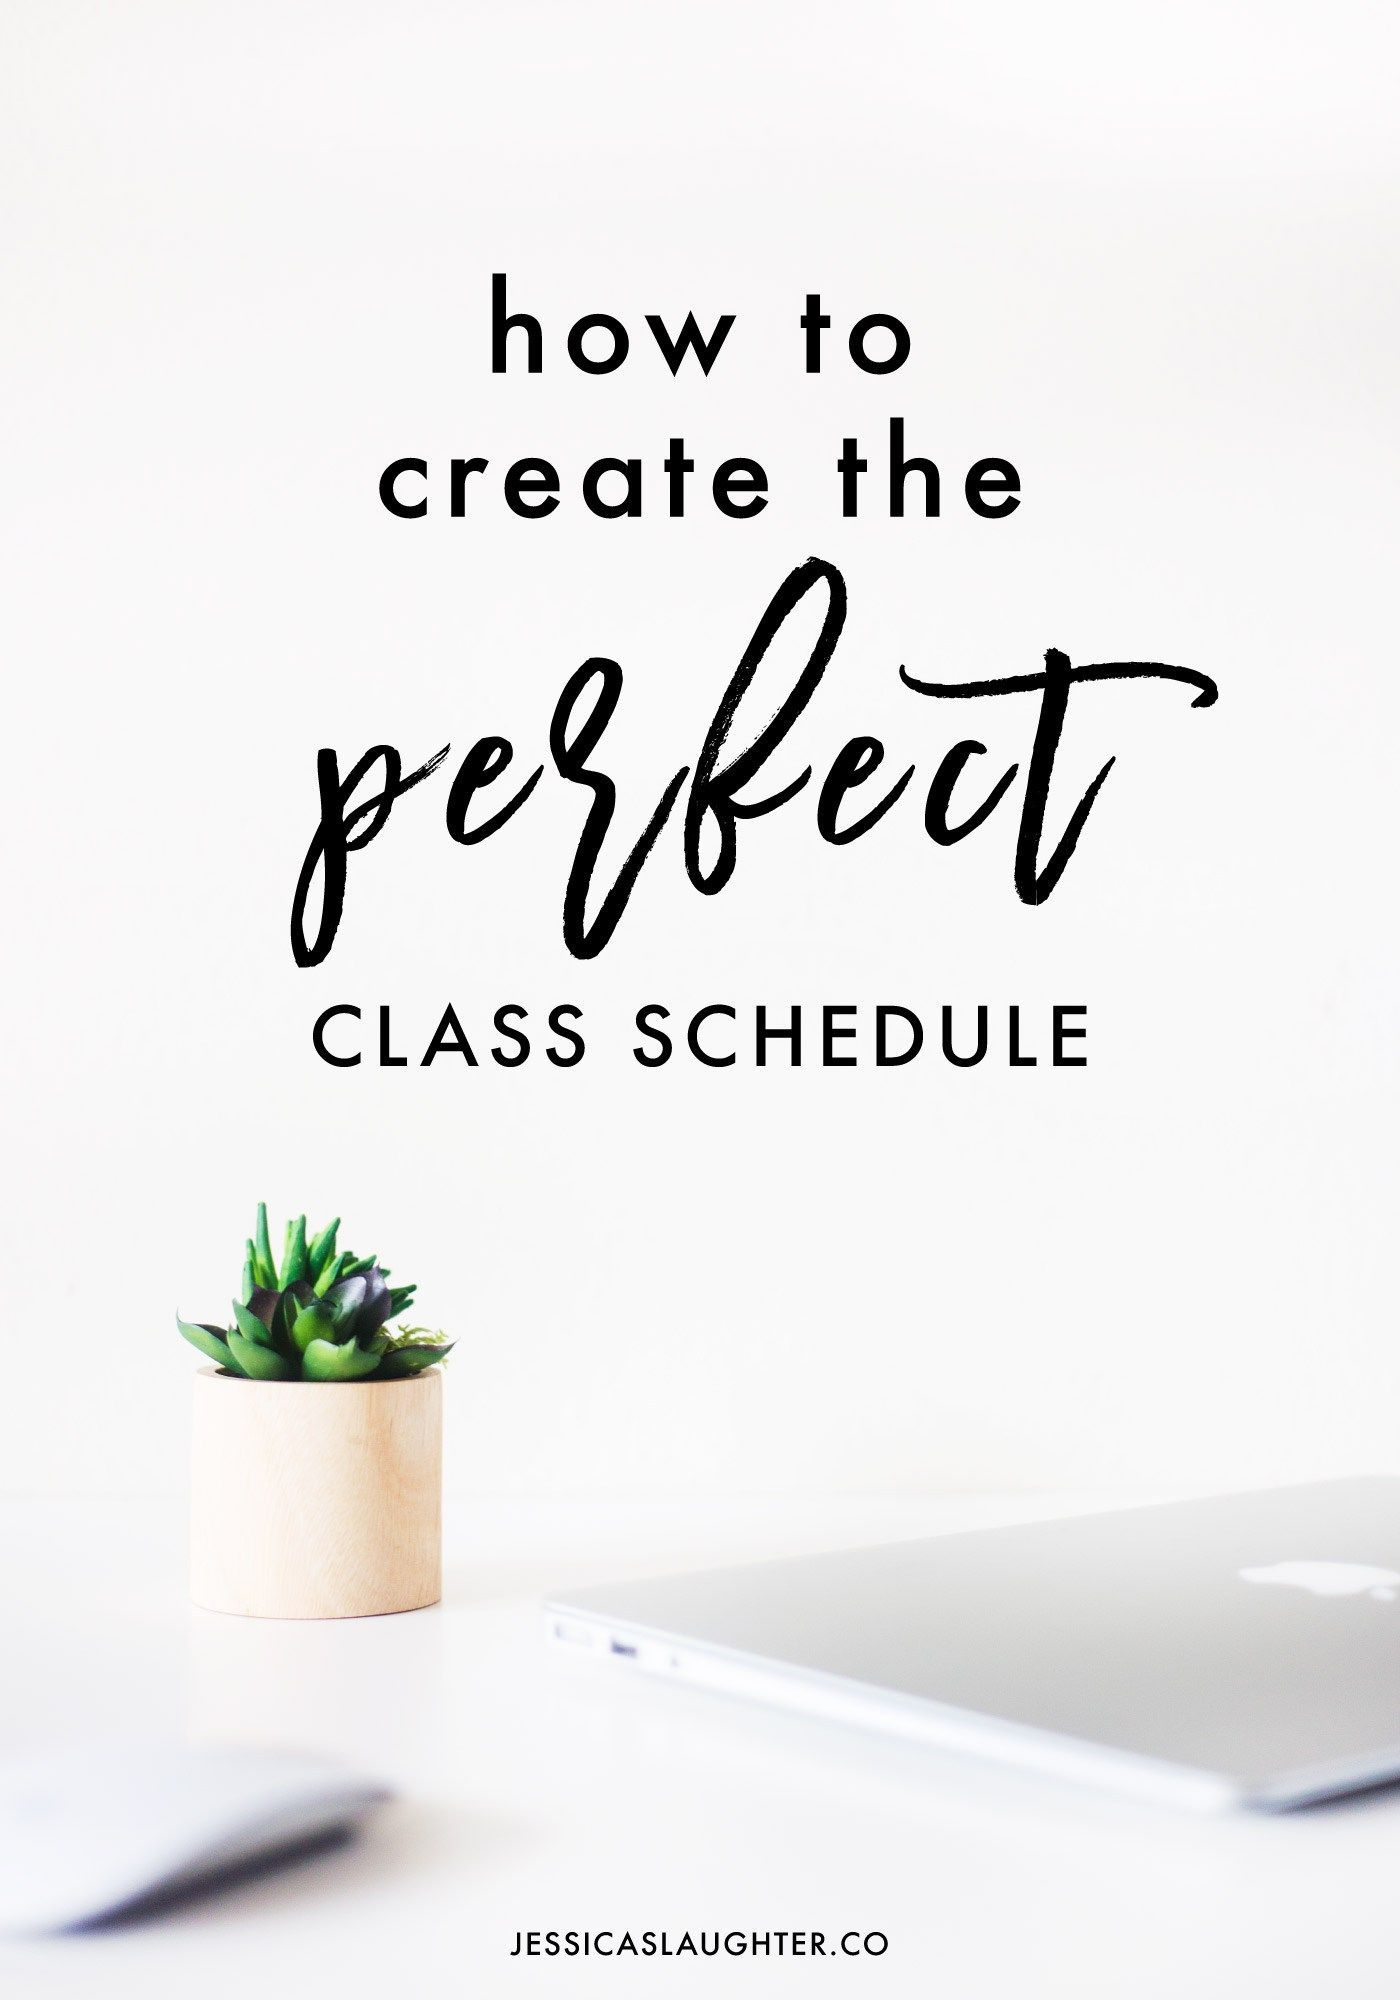 How To Create The Perfect Class Schedule With Images